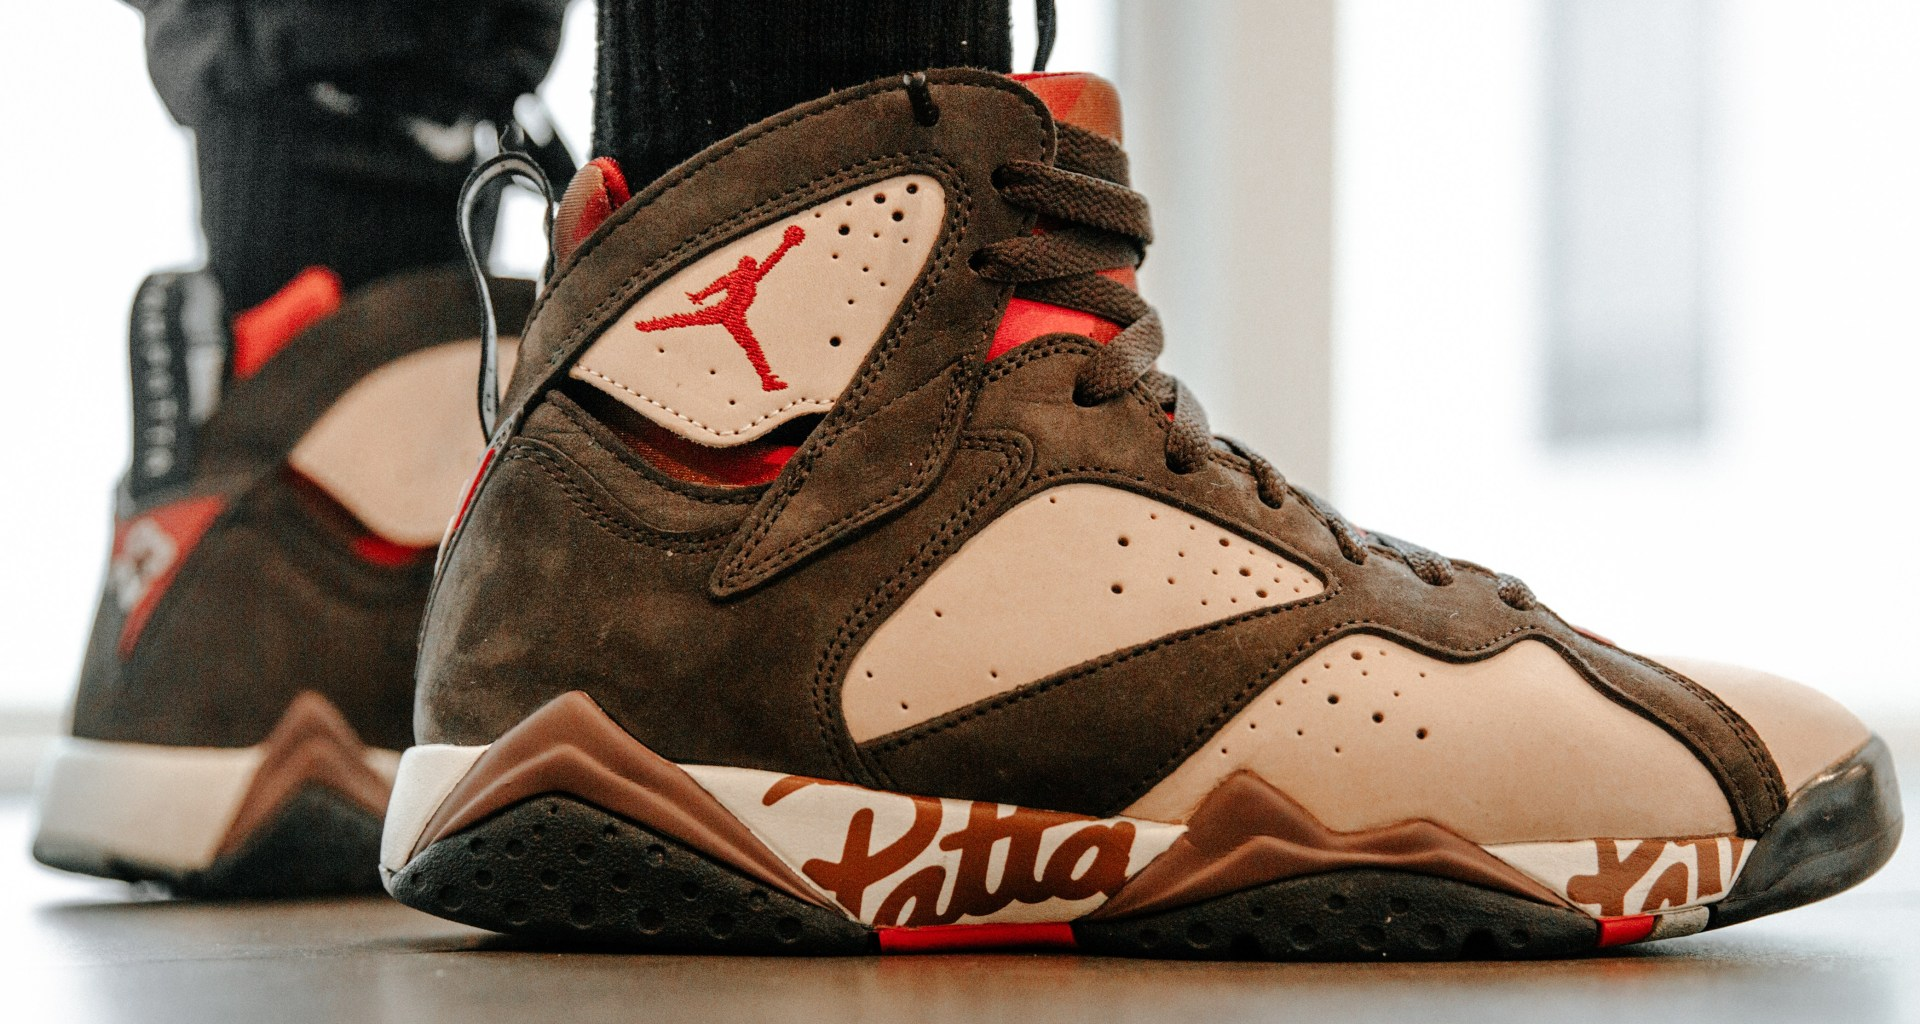 6bebbdcd1865 Here is our best look yet at the upcoming Air Jordan 7 x Patta. The  Amsterdam based shop has dressed the sneaker in Shimmer Tough Red-Velvet  Brown-Mahogany ...